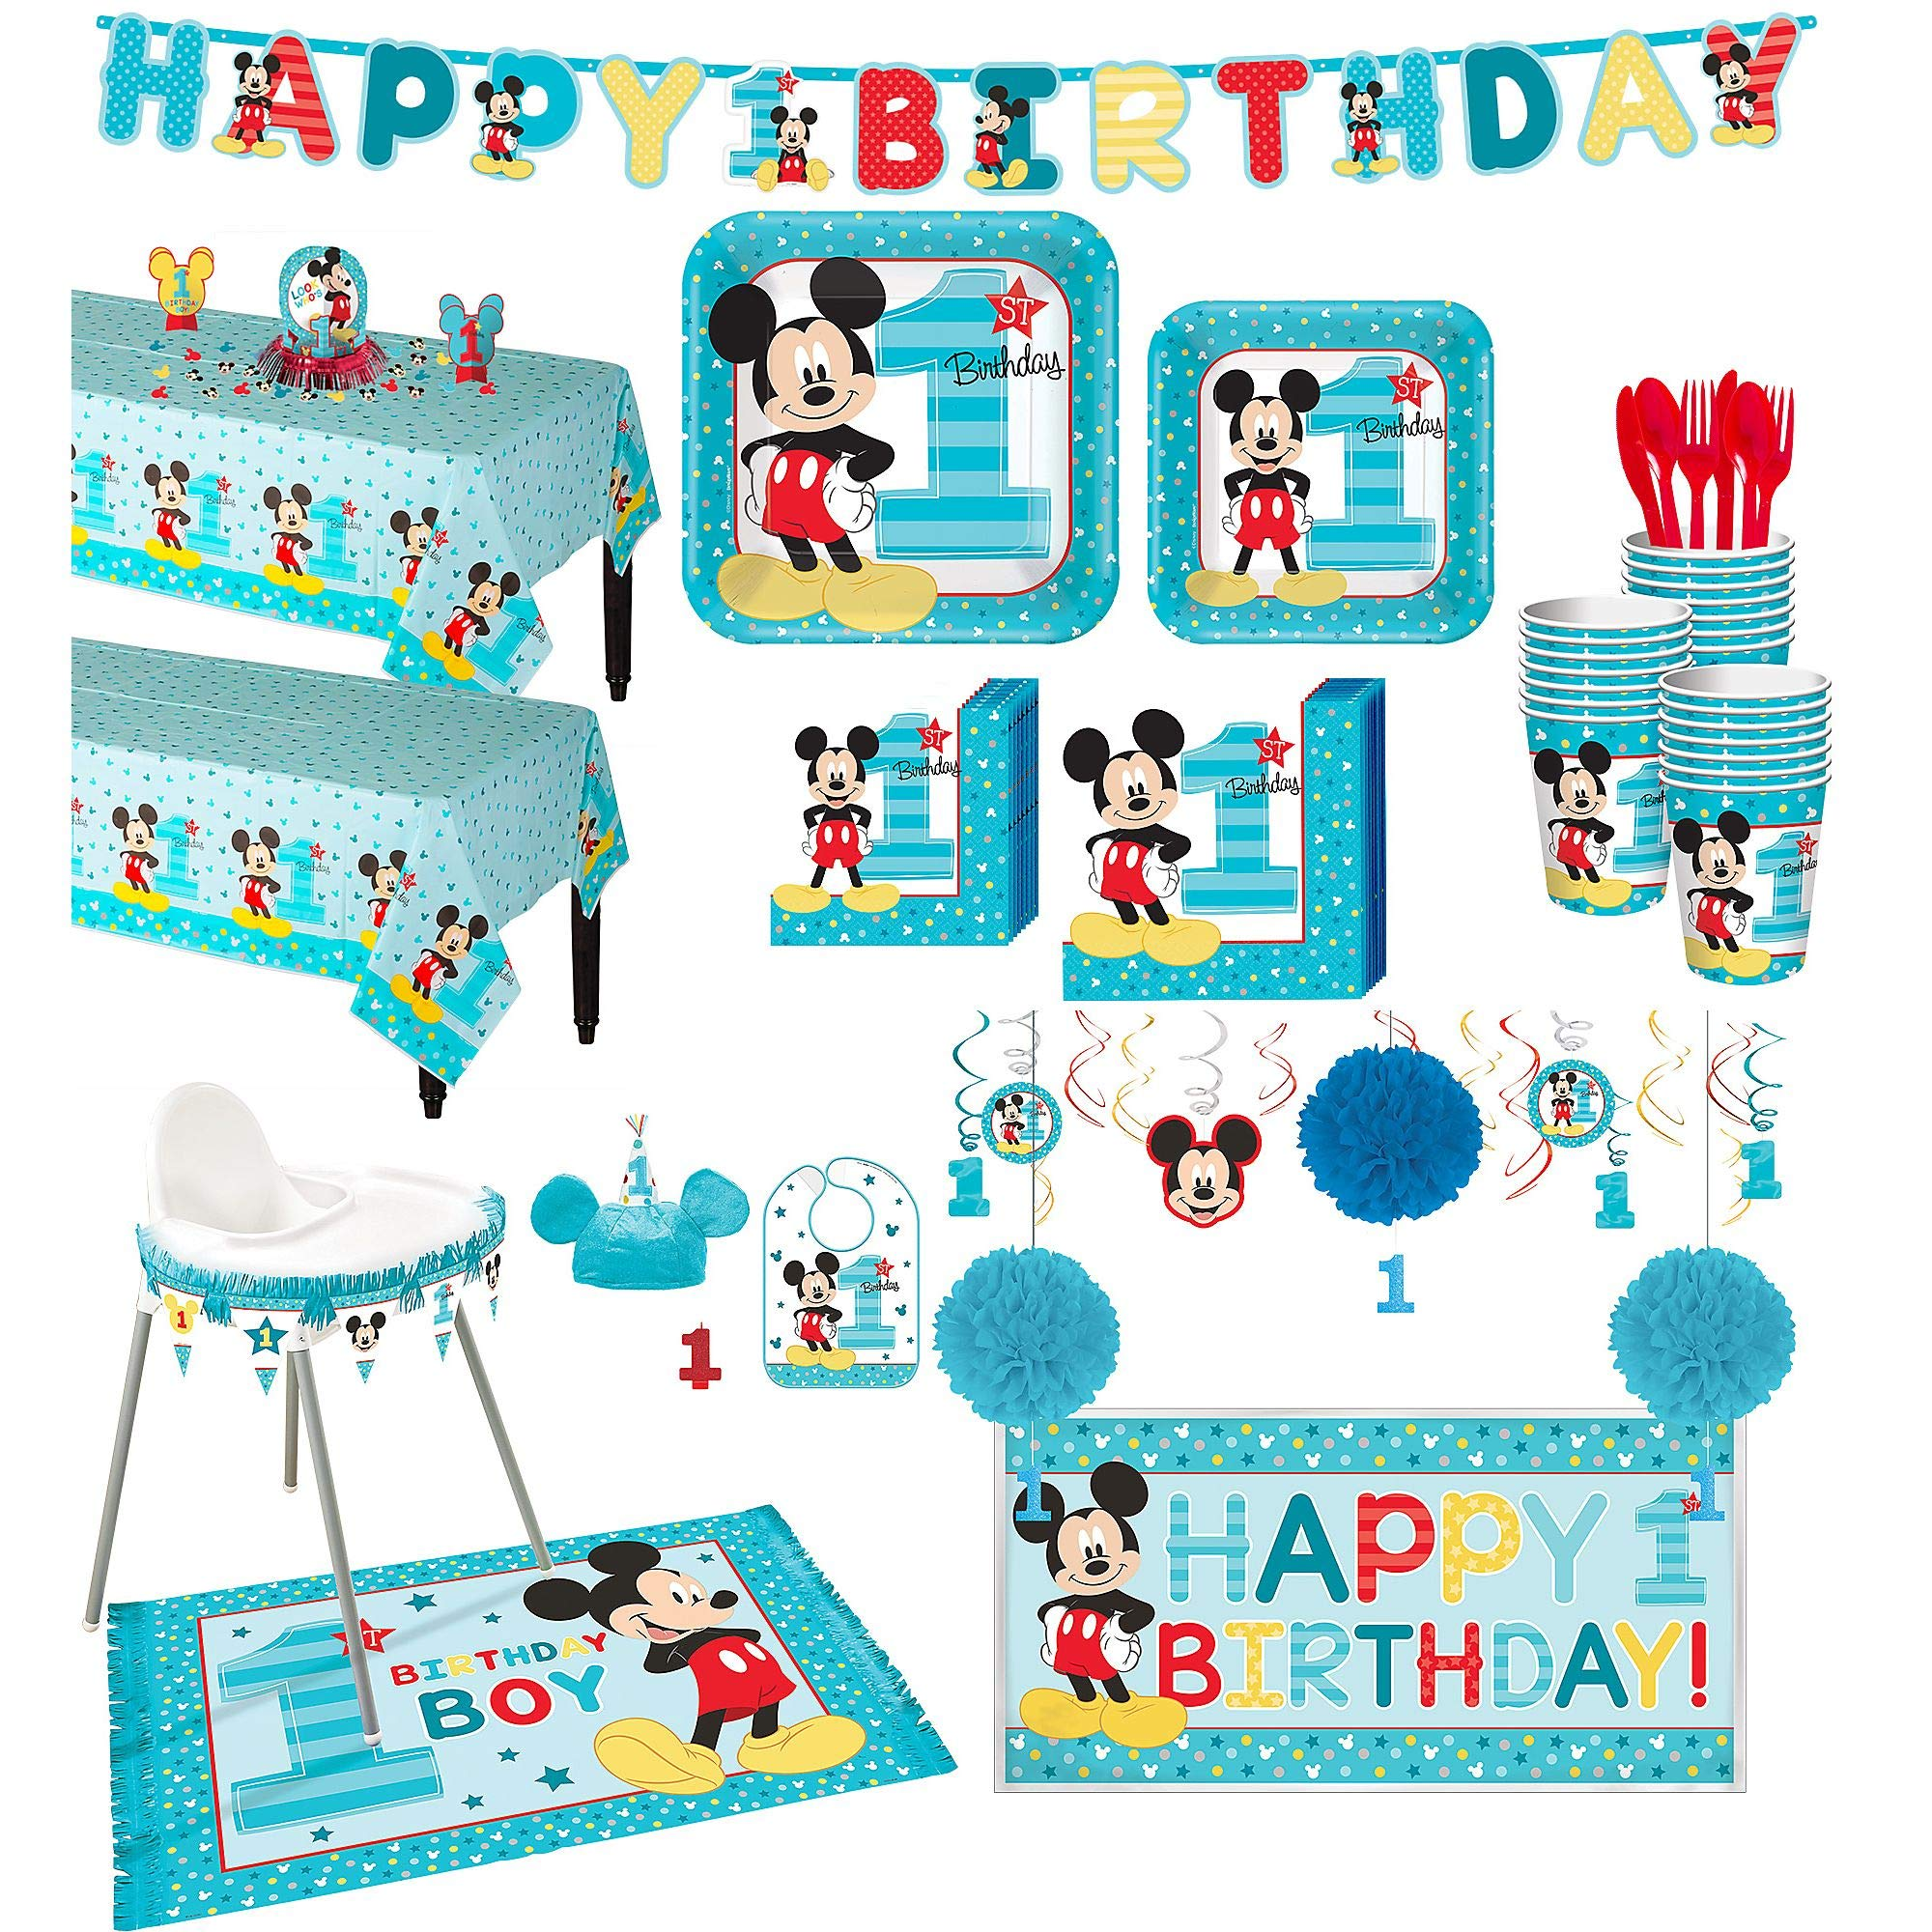 Party City 1st Birthday Mickey Mouse Deluxe Party Kit for 32 Guests, Includes High Chair Decorating Supplies and More by Party City